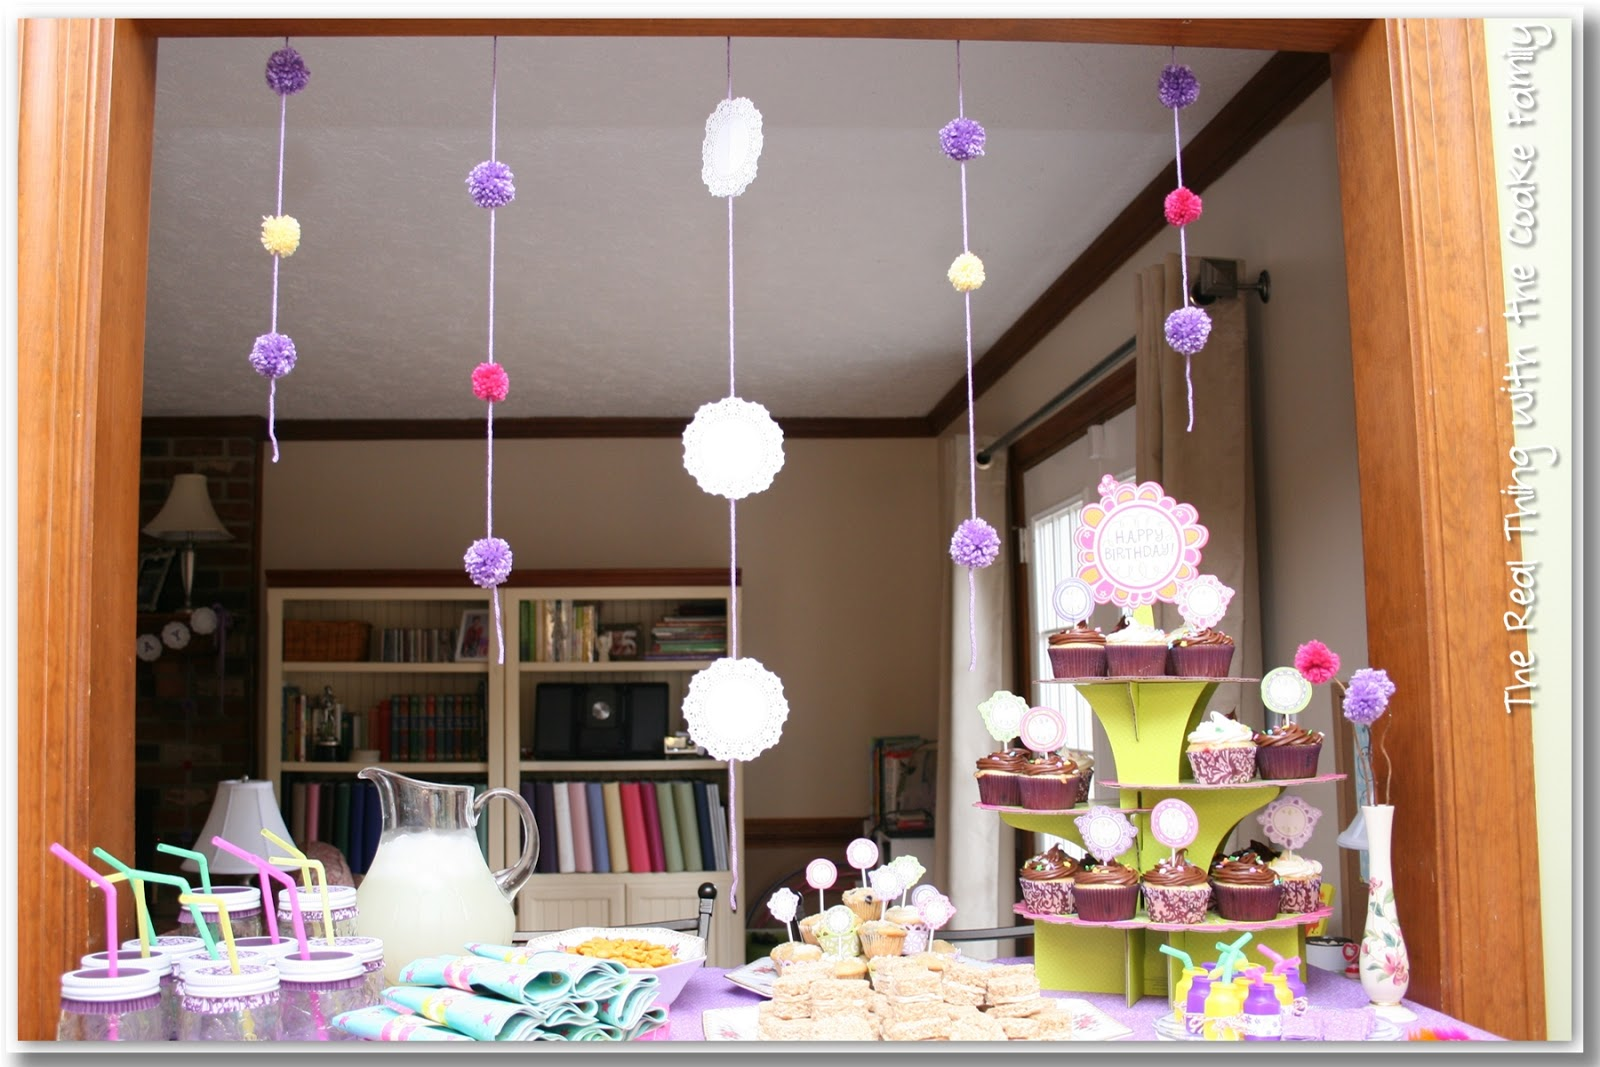 Ideas of cute and easy to make decorations for an American Girl Birthday Party. # : birthday decoration ideas with streamers - www.pureclipart.com